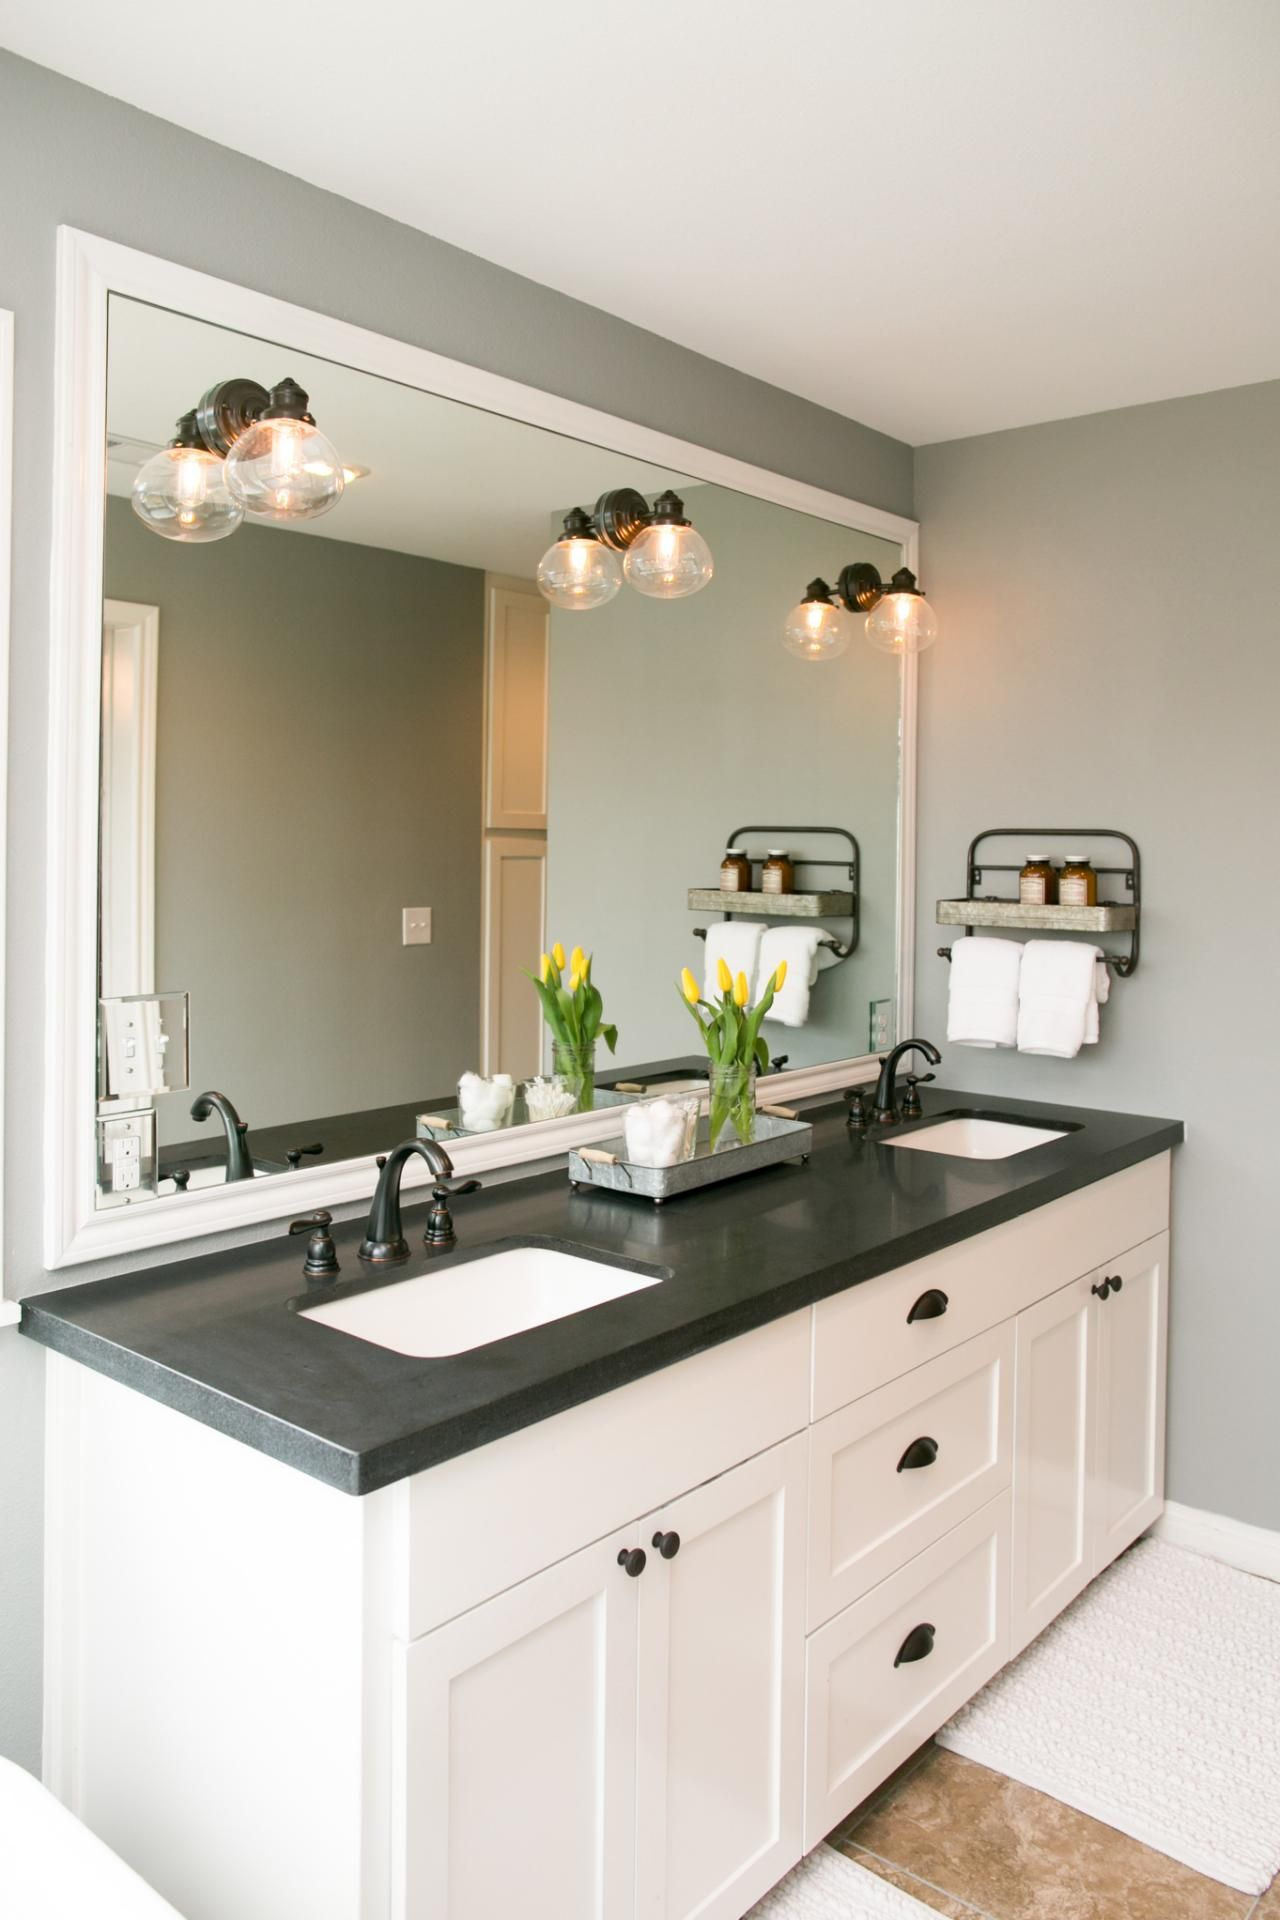 Double Vanity Sinks White Vanity Bathroom Black Granite Countertops Bathroom Countertops